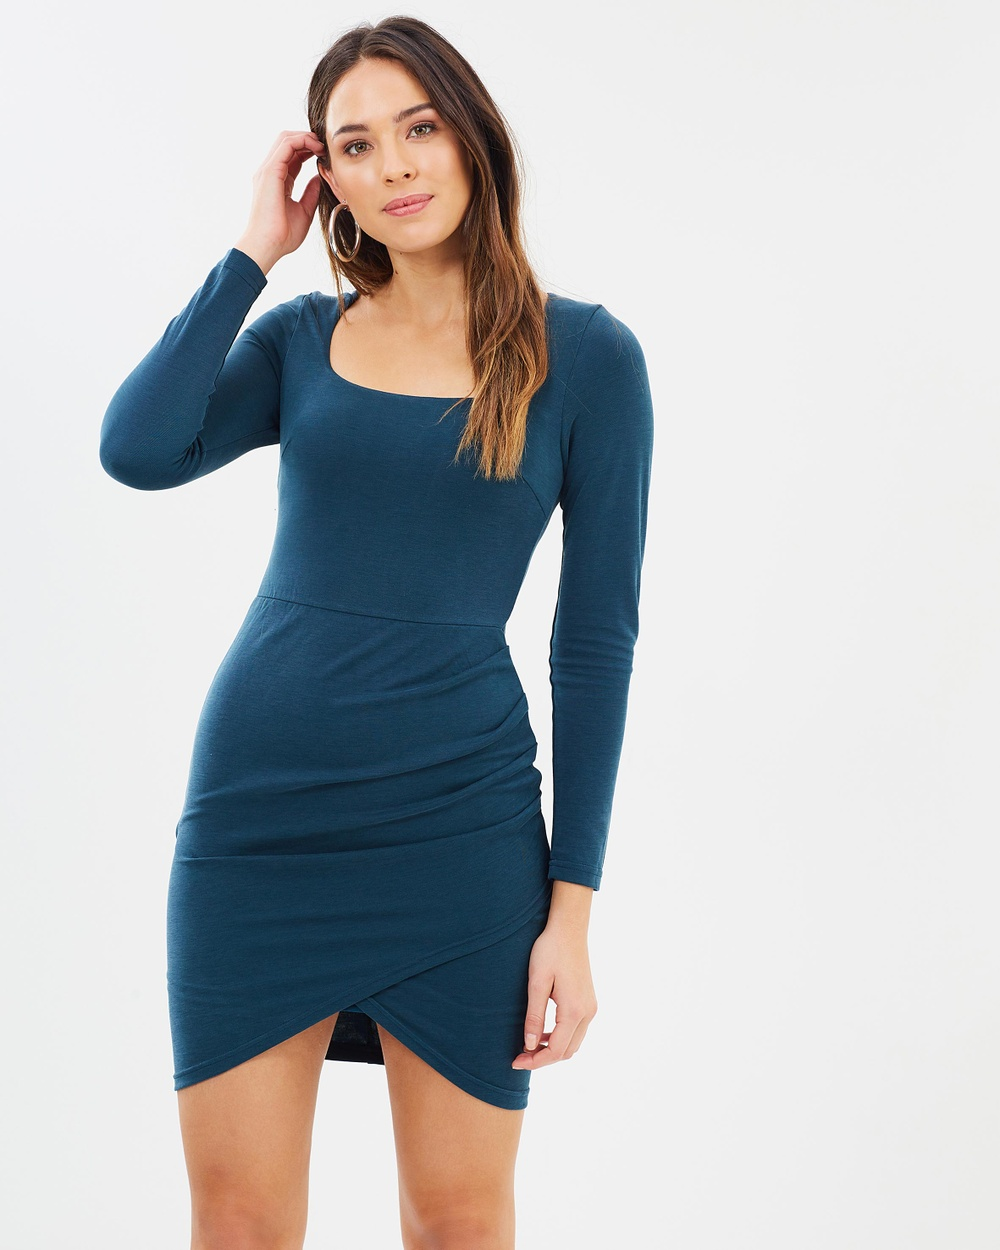 Fresh Soul Chorus Dress Bodycon Dresses Modal Chorus Dress